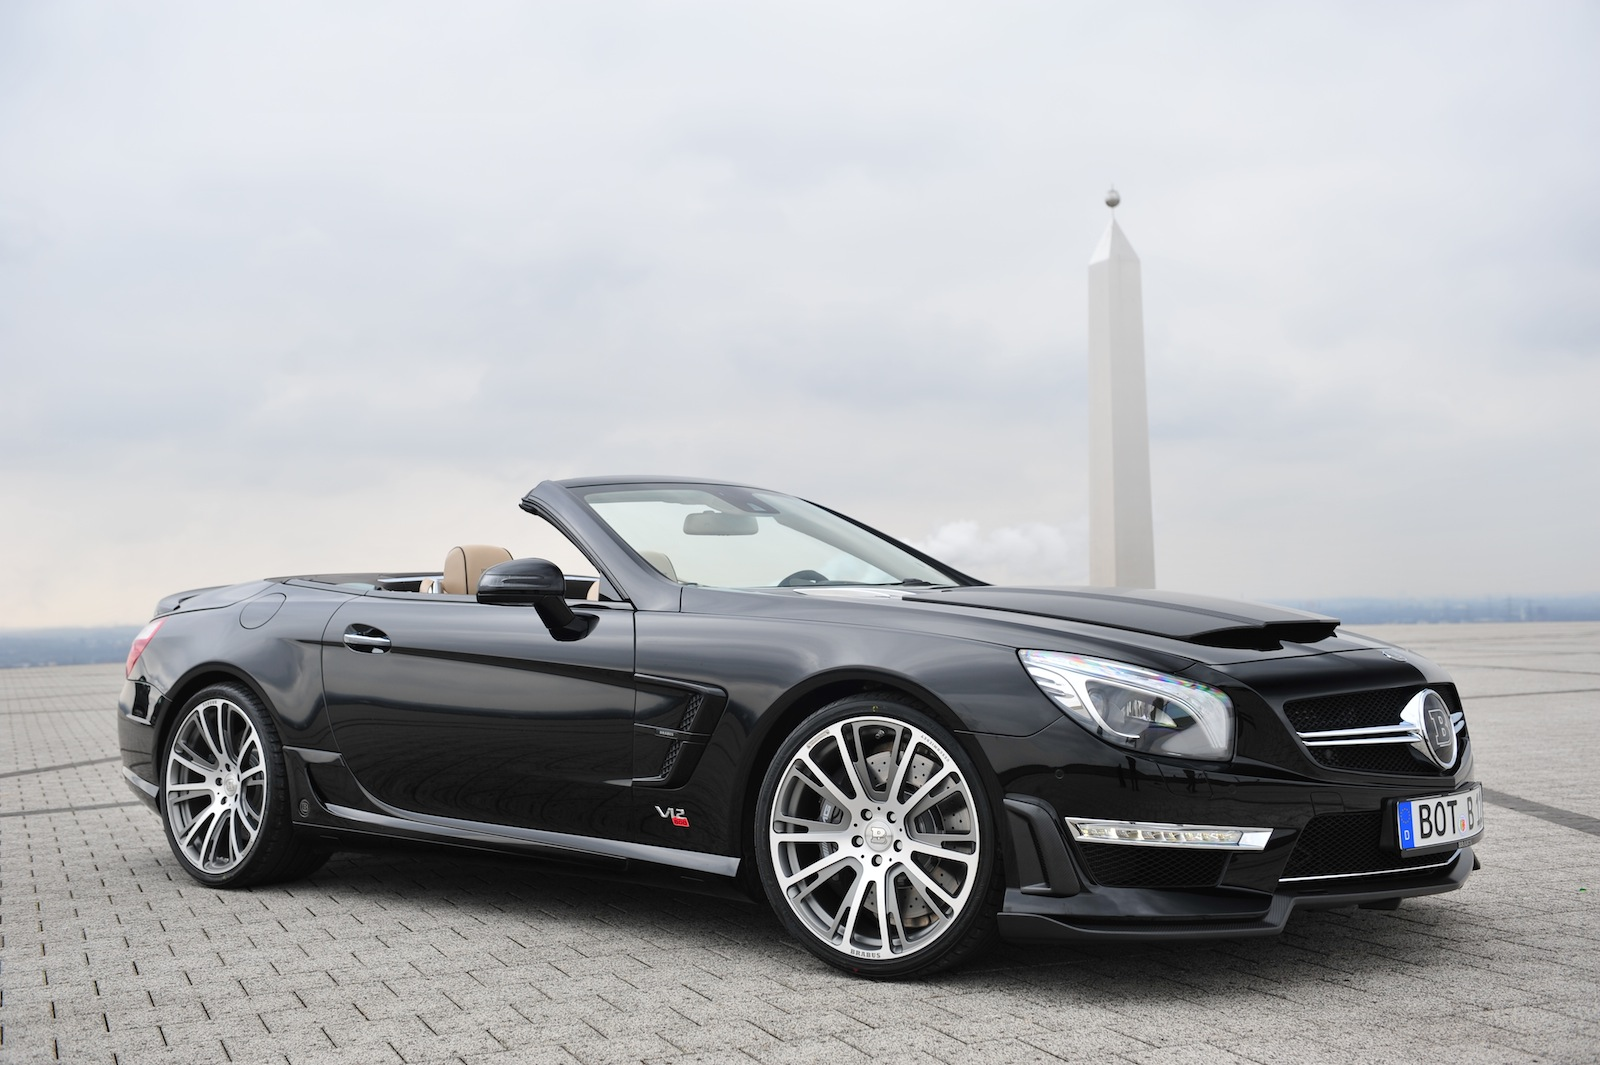 SL65 AMG-Based Brabus 800 Roadster To Debut In Geneva